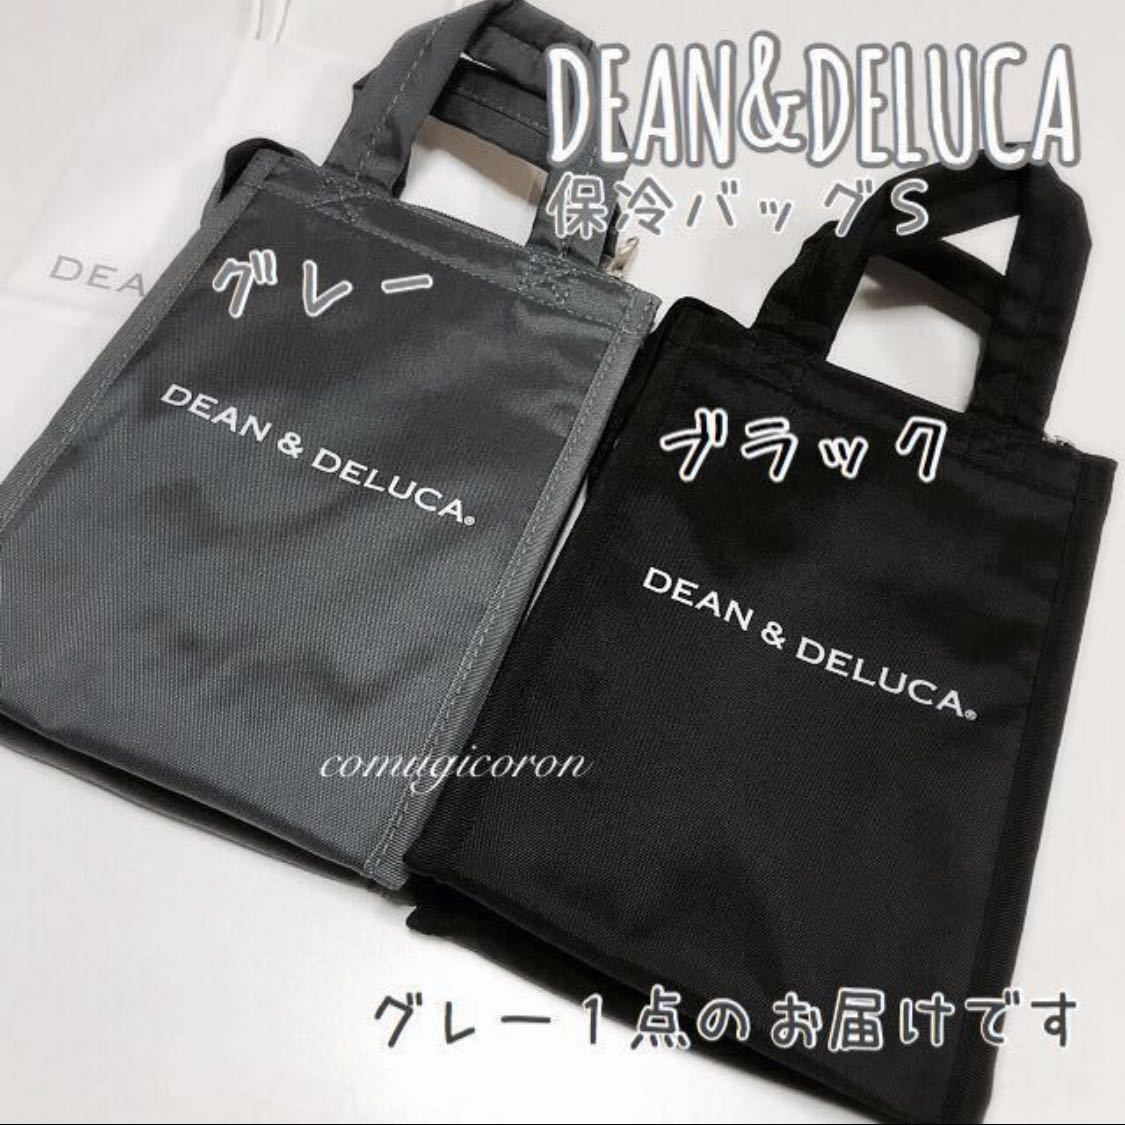 DEAN&DELUCA オンライン限定 グレー ディーン&デルーカ 保冷バッグ Sサイズ クーラーバッグ ランチバッグ トートバッグ エコバッグ 正規品